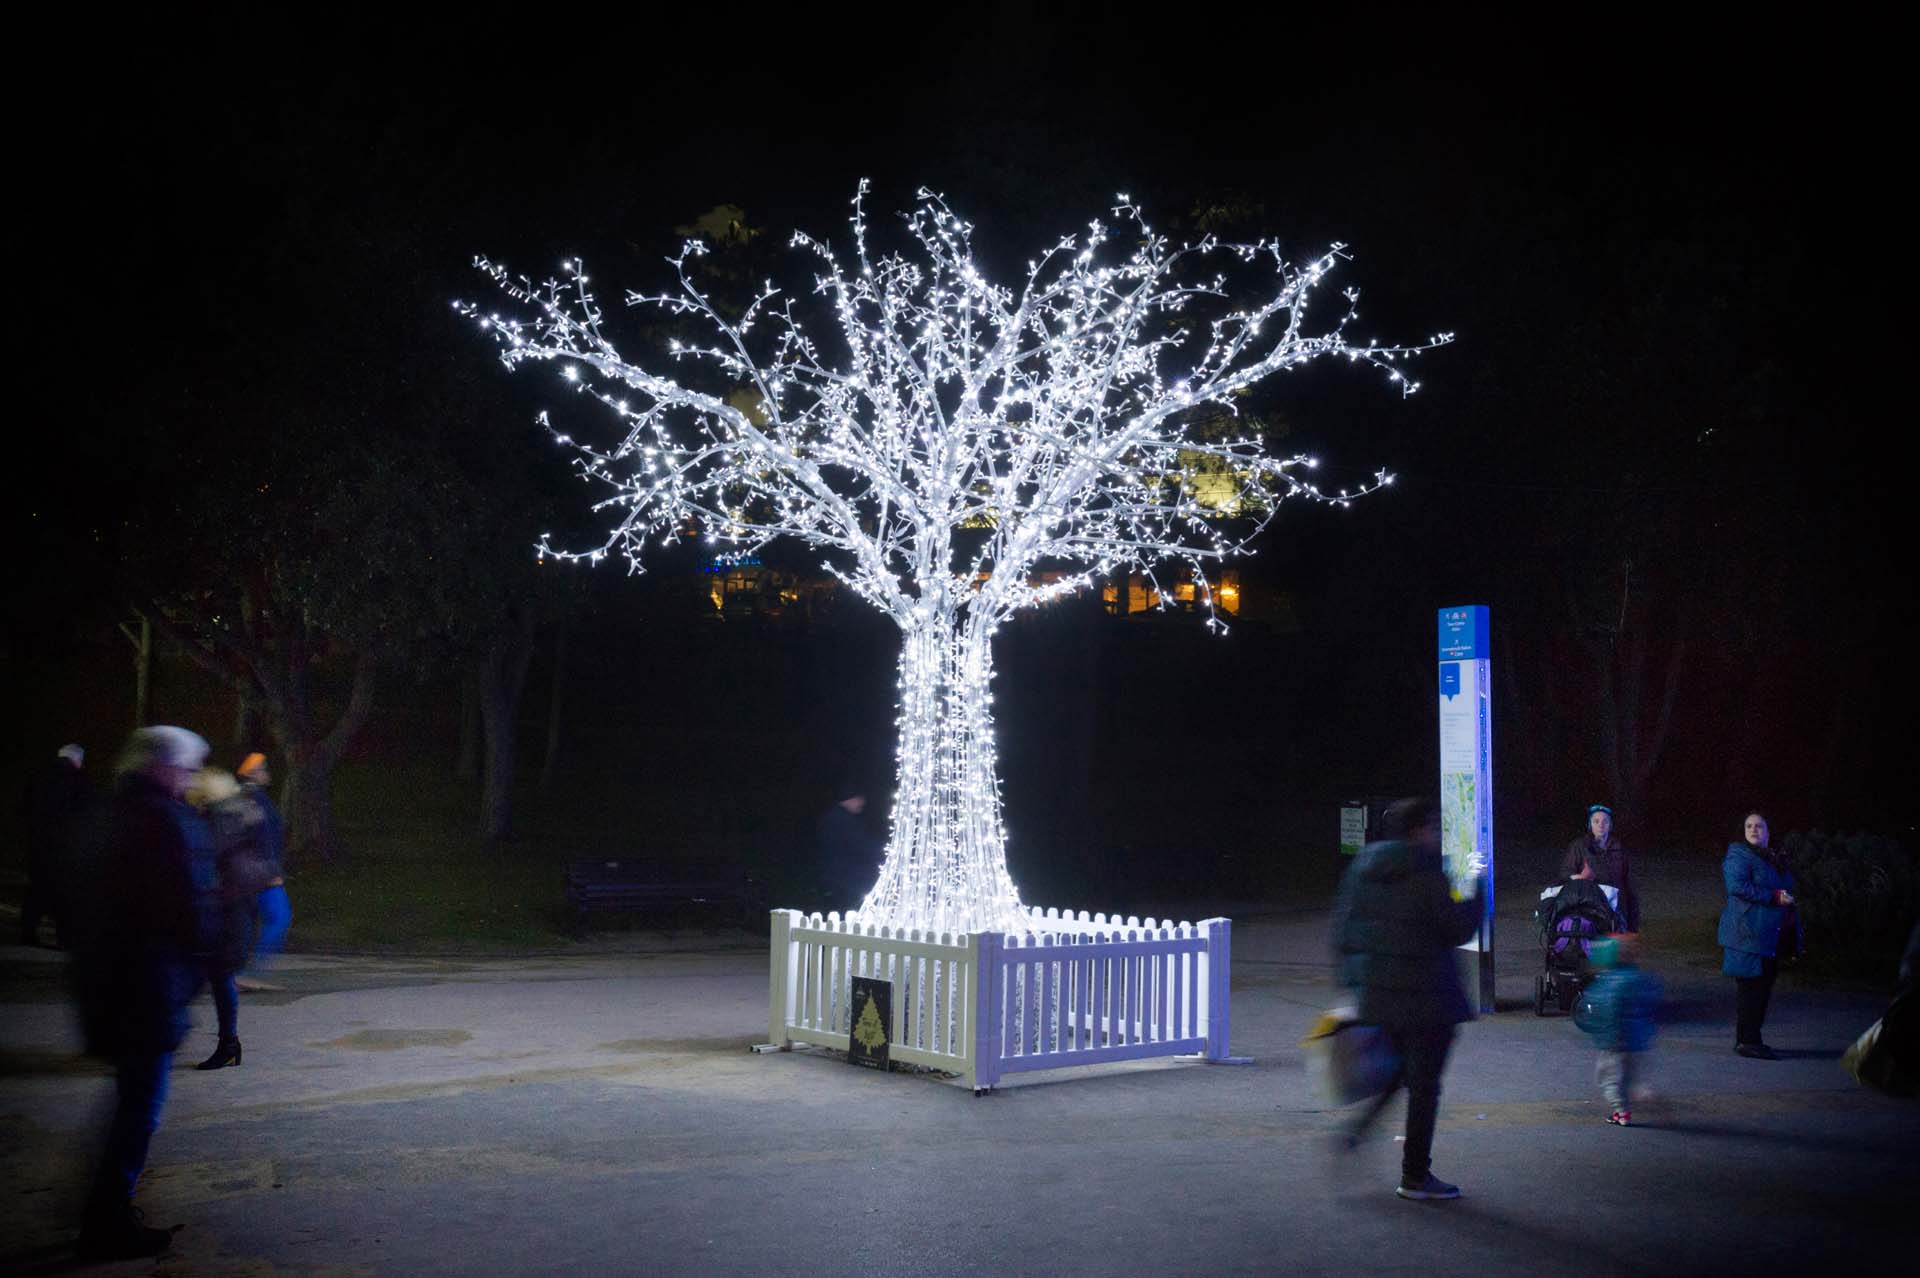 Tree of light with people walking past